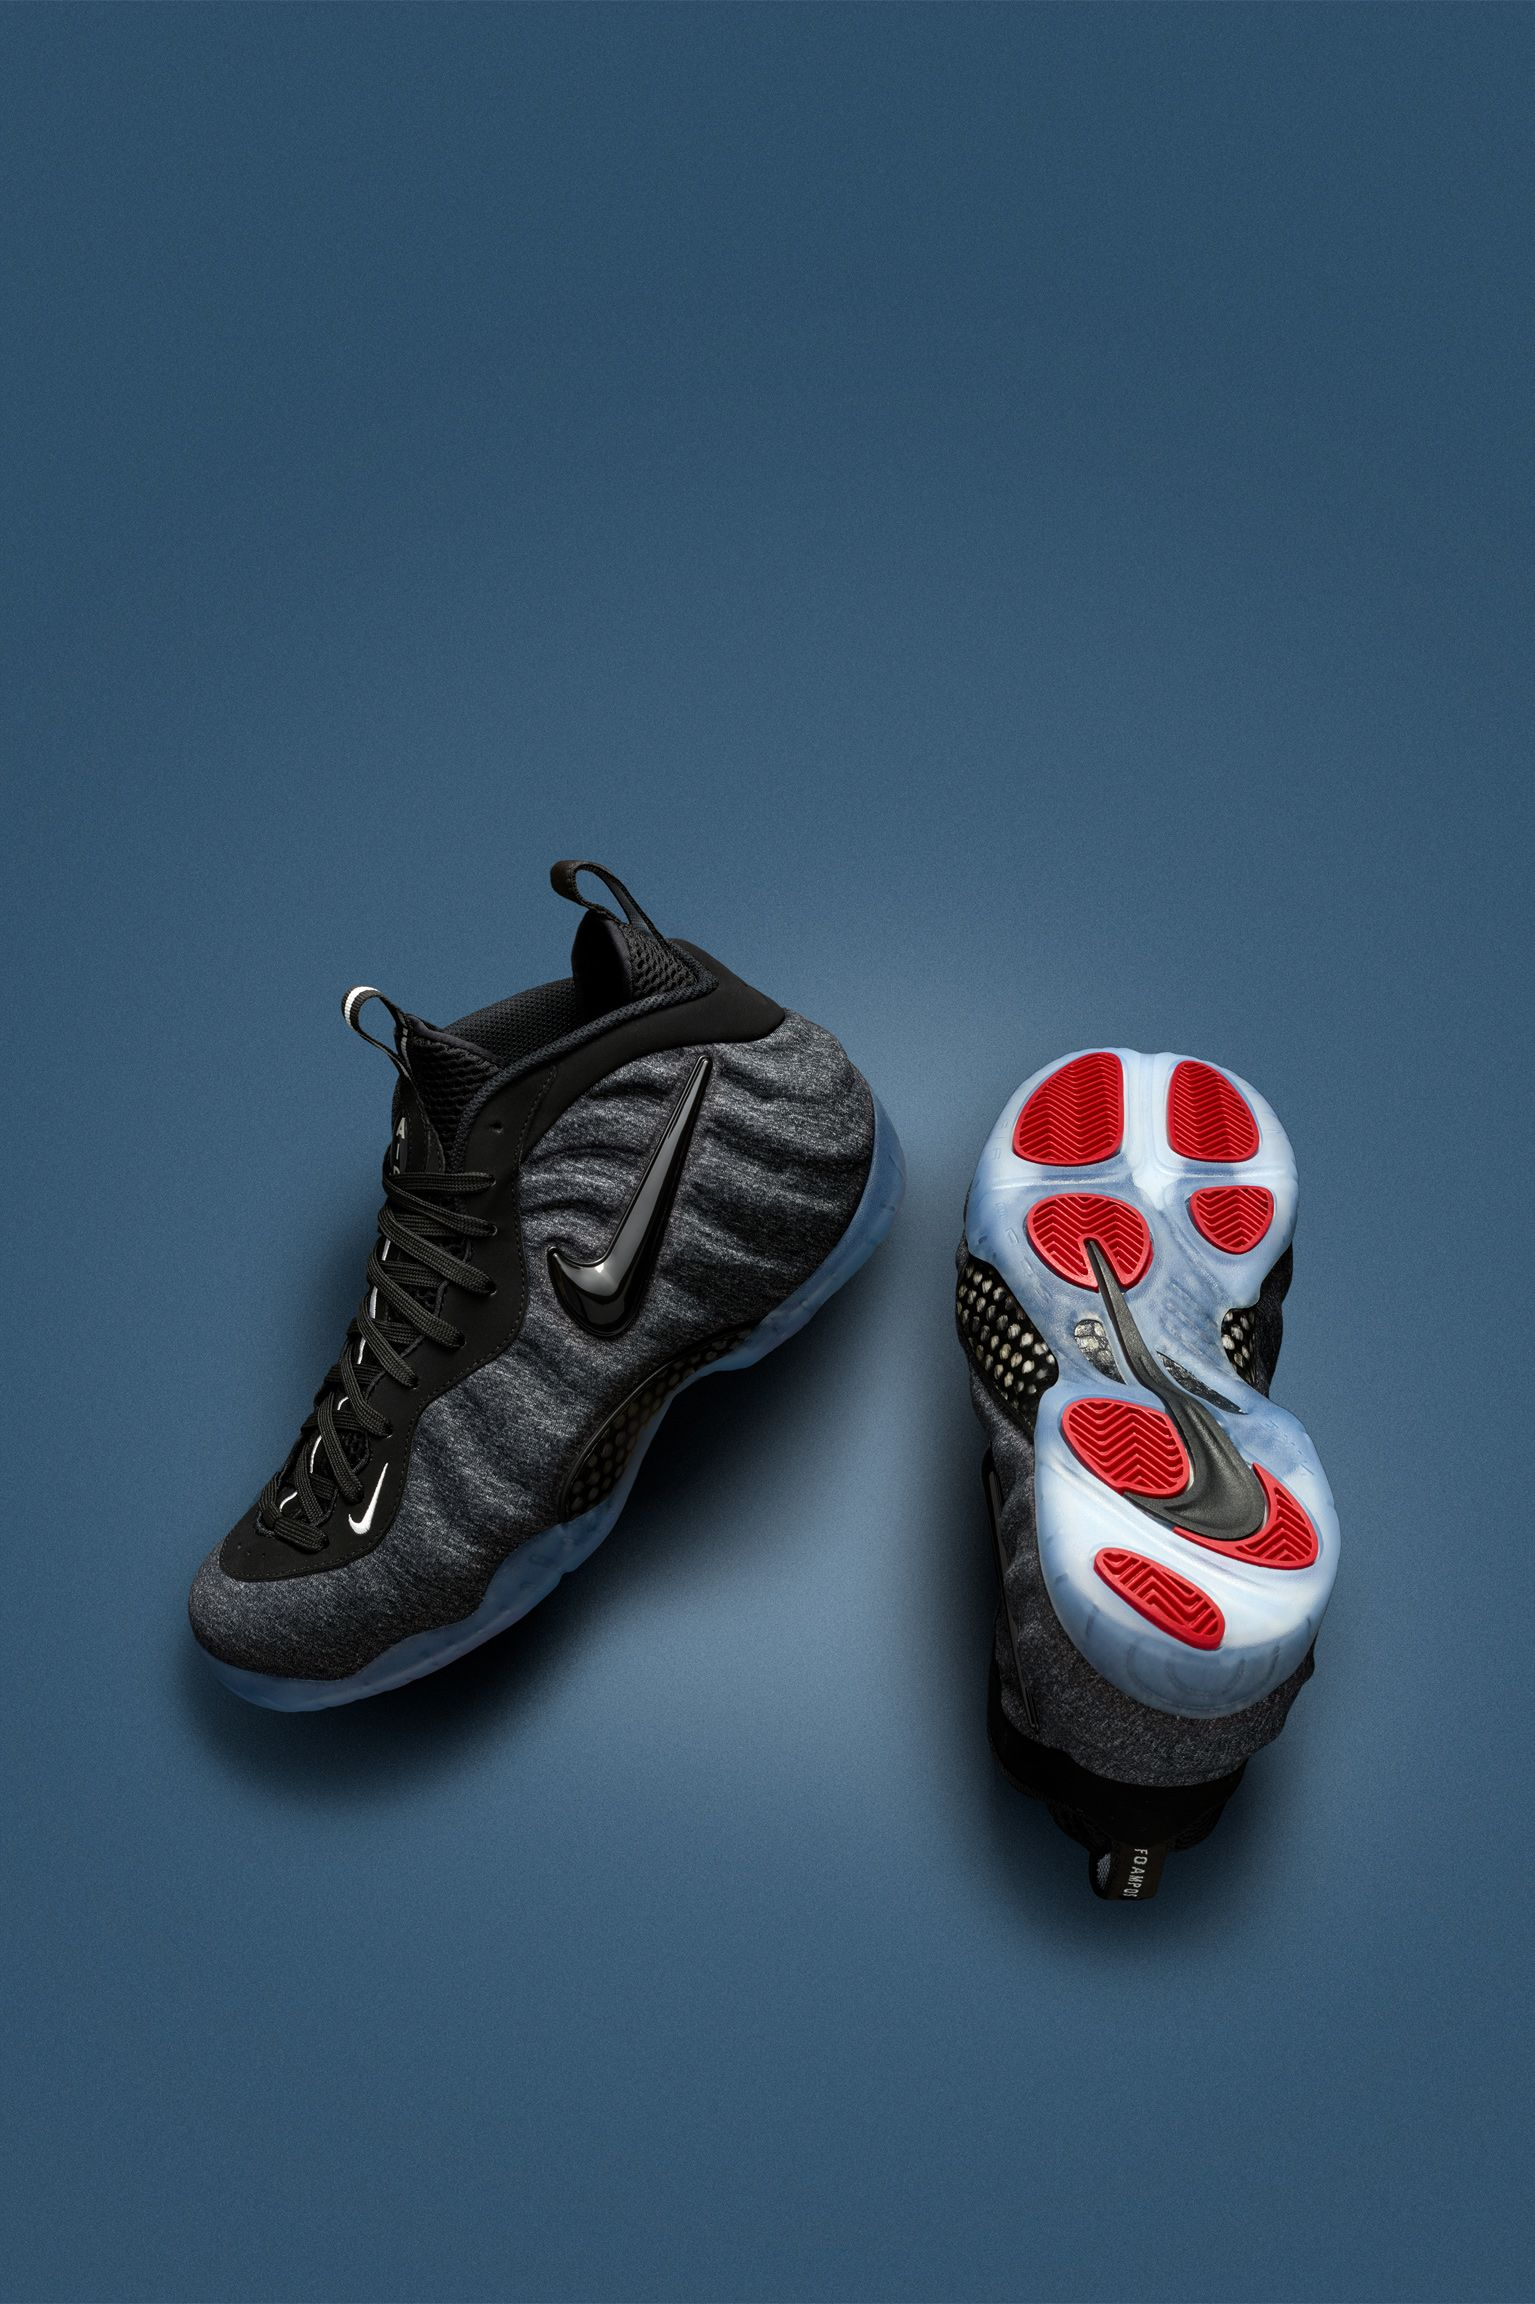 Nike Air Foamposite Pro 'Dark Heather Grey & Black'